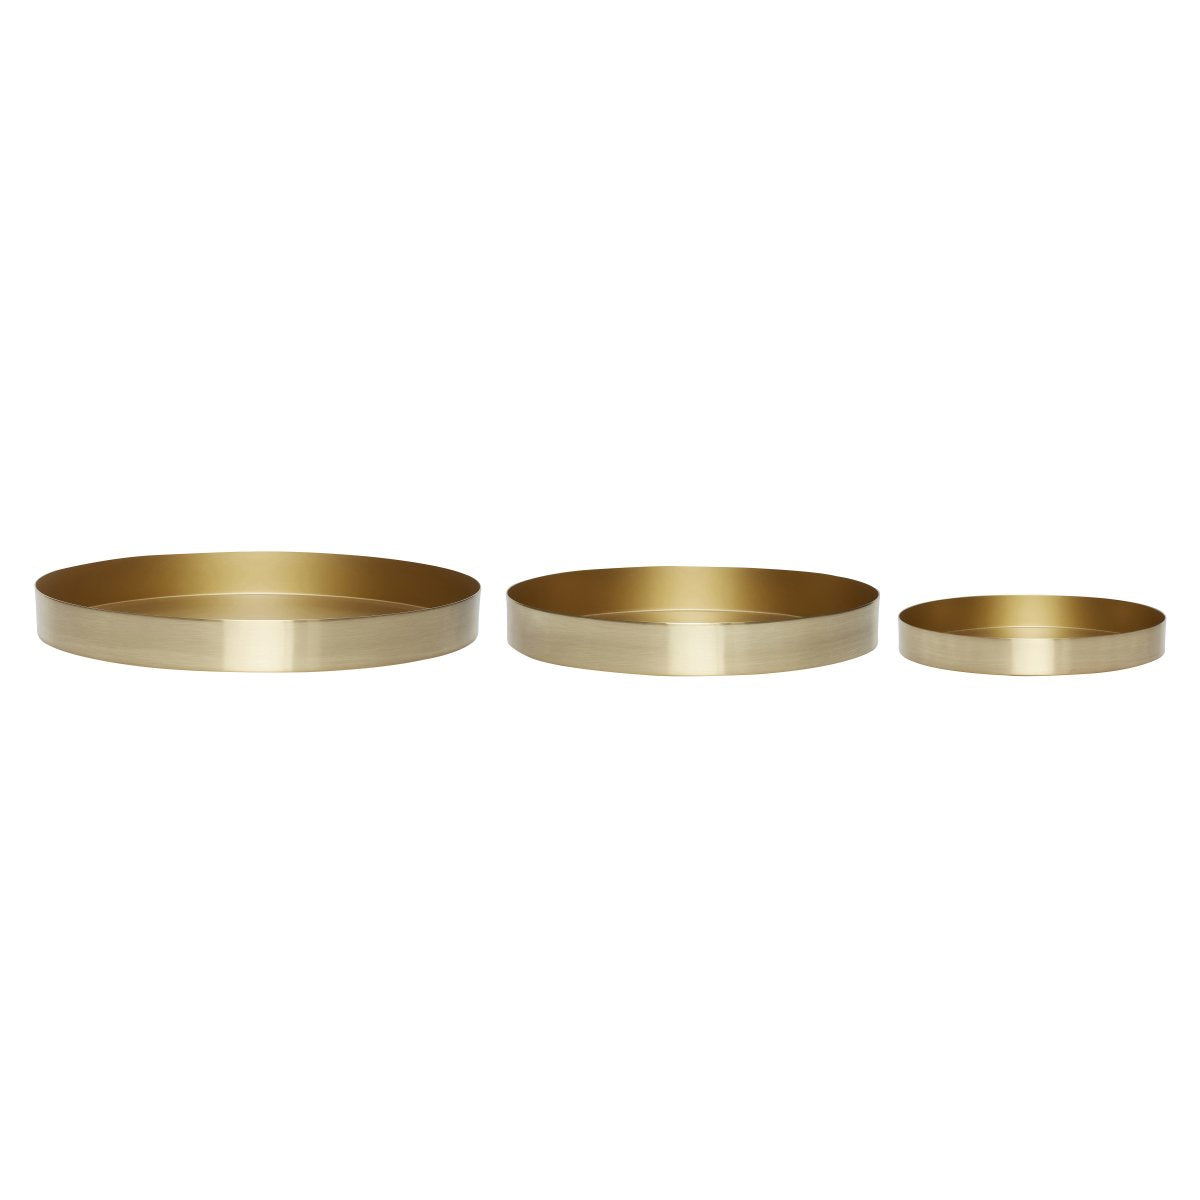 Brass Round Serving Tray Small